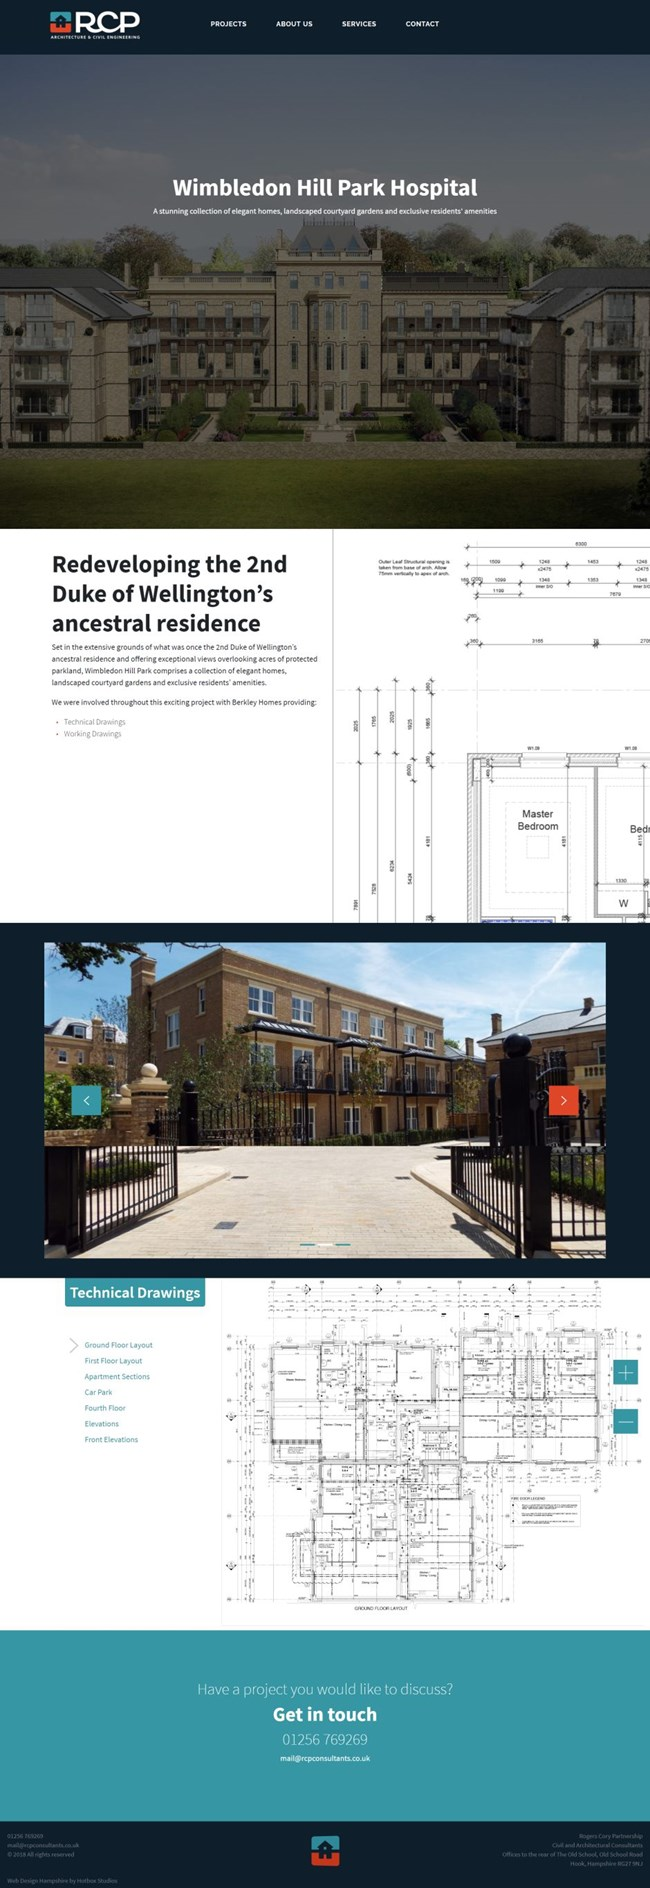 Rogers Cory Partnership Wordpress Web Design SP004 Projects Wimbledon Hill Park Hospital